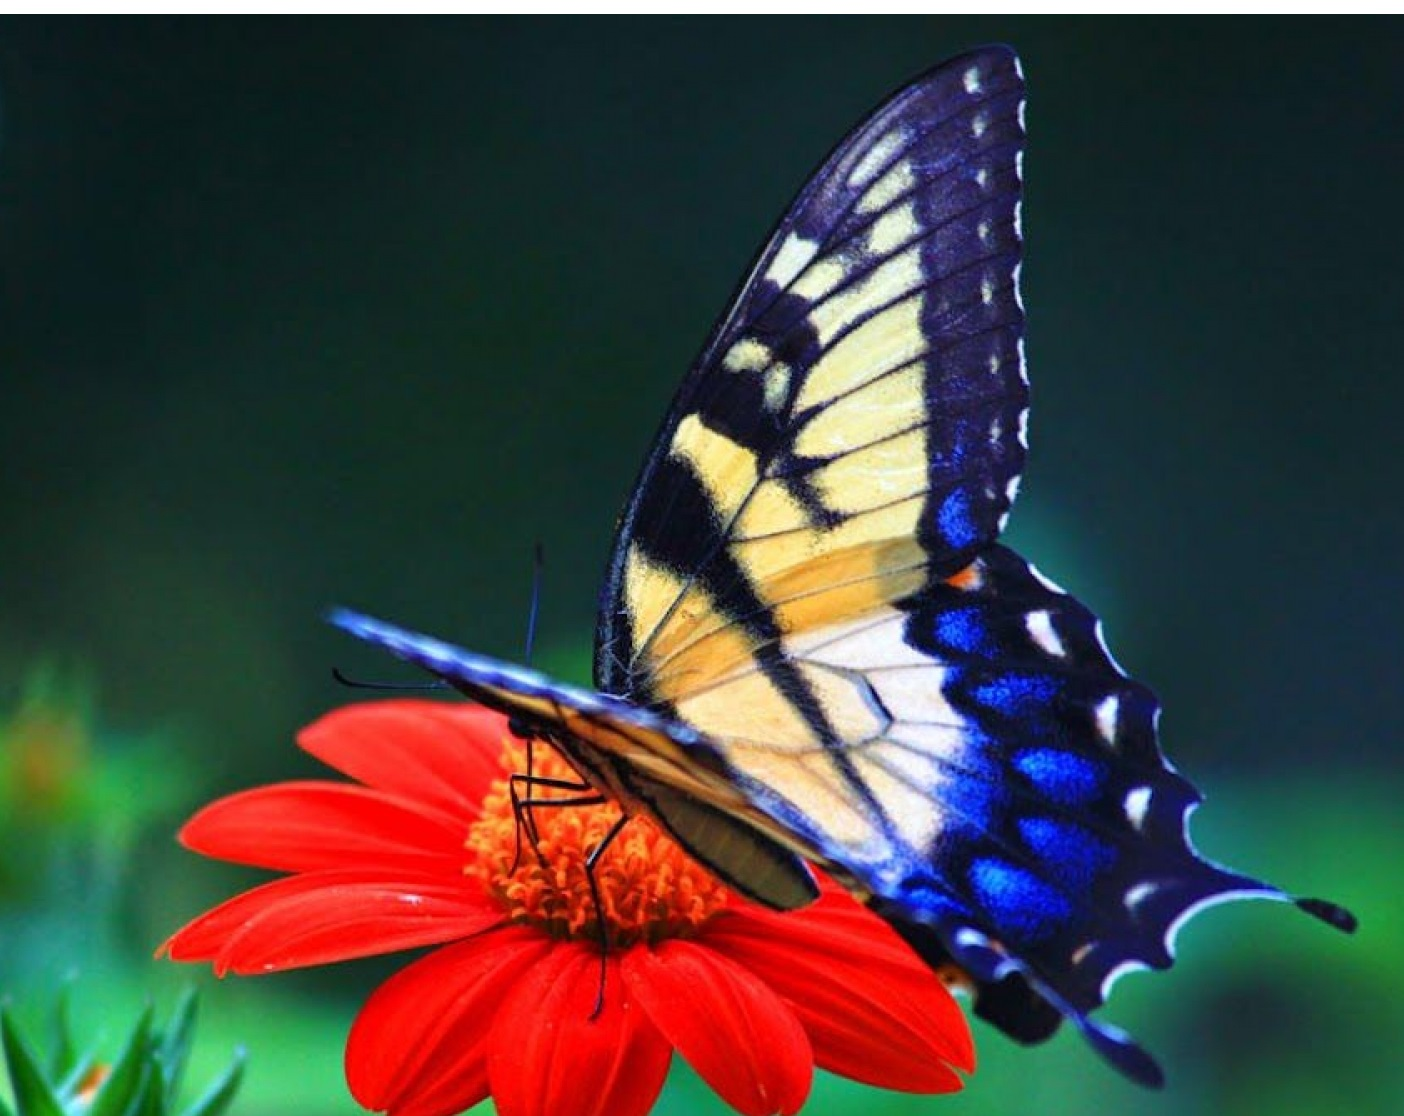 55 Colorful ButterflyHD Images Wallpapers Download 1404x1116